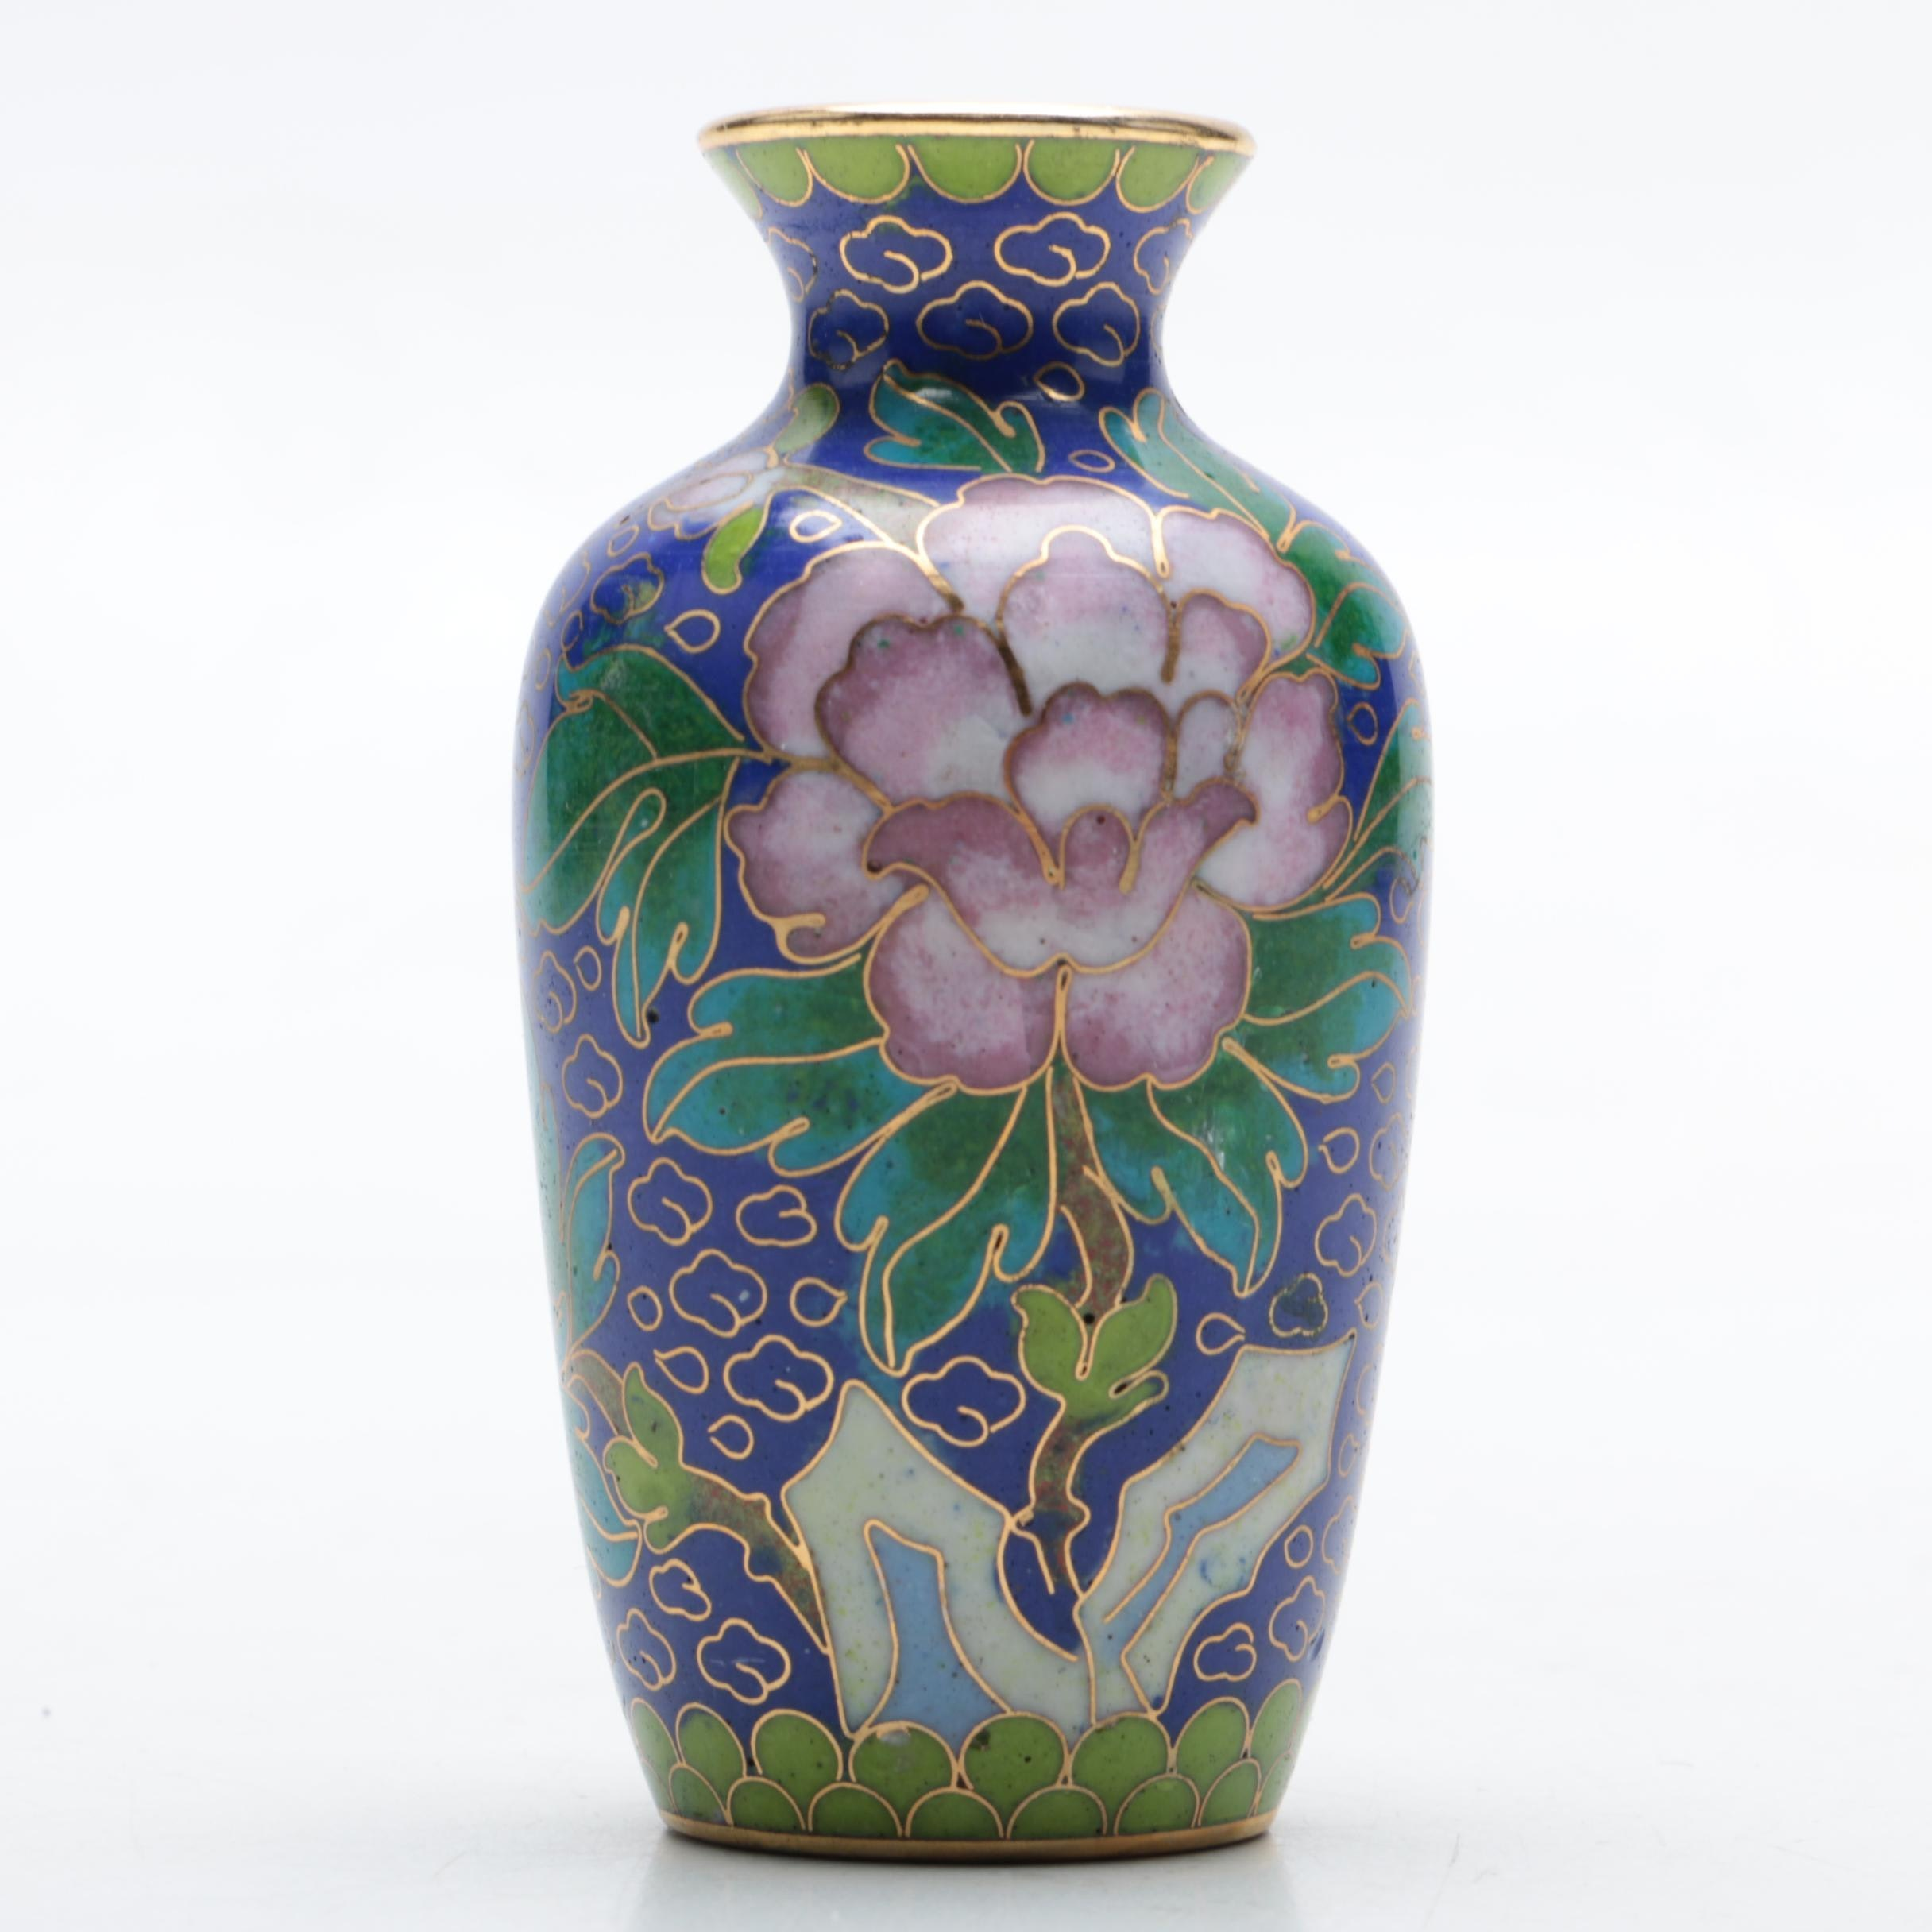 Asian-Inspired Cloisonné Poesy Vase